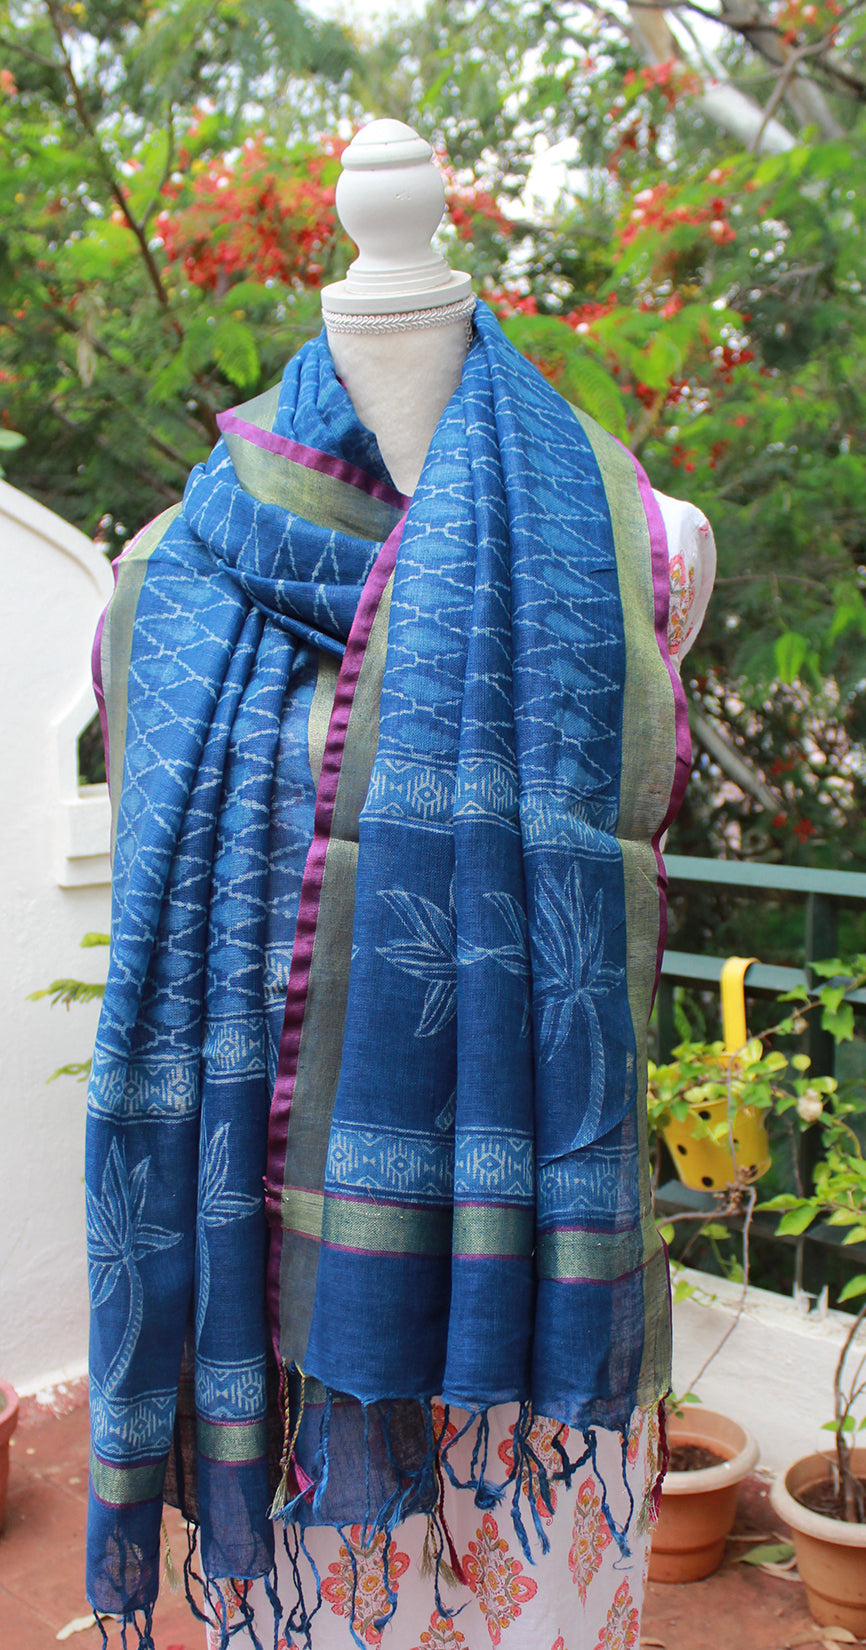 Indigo Kota Doria Cotton Hand Block Printed Saree with Red Jacquard Cotton Blouse Piece